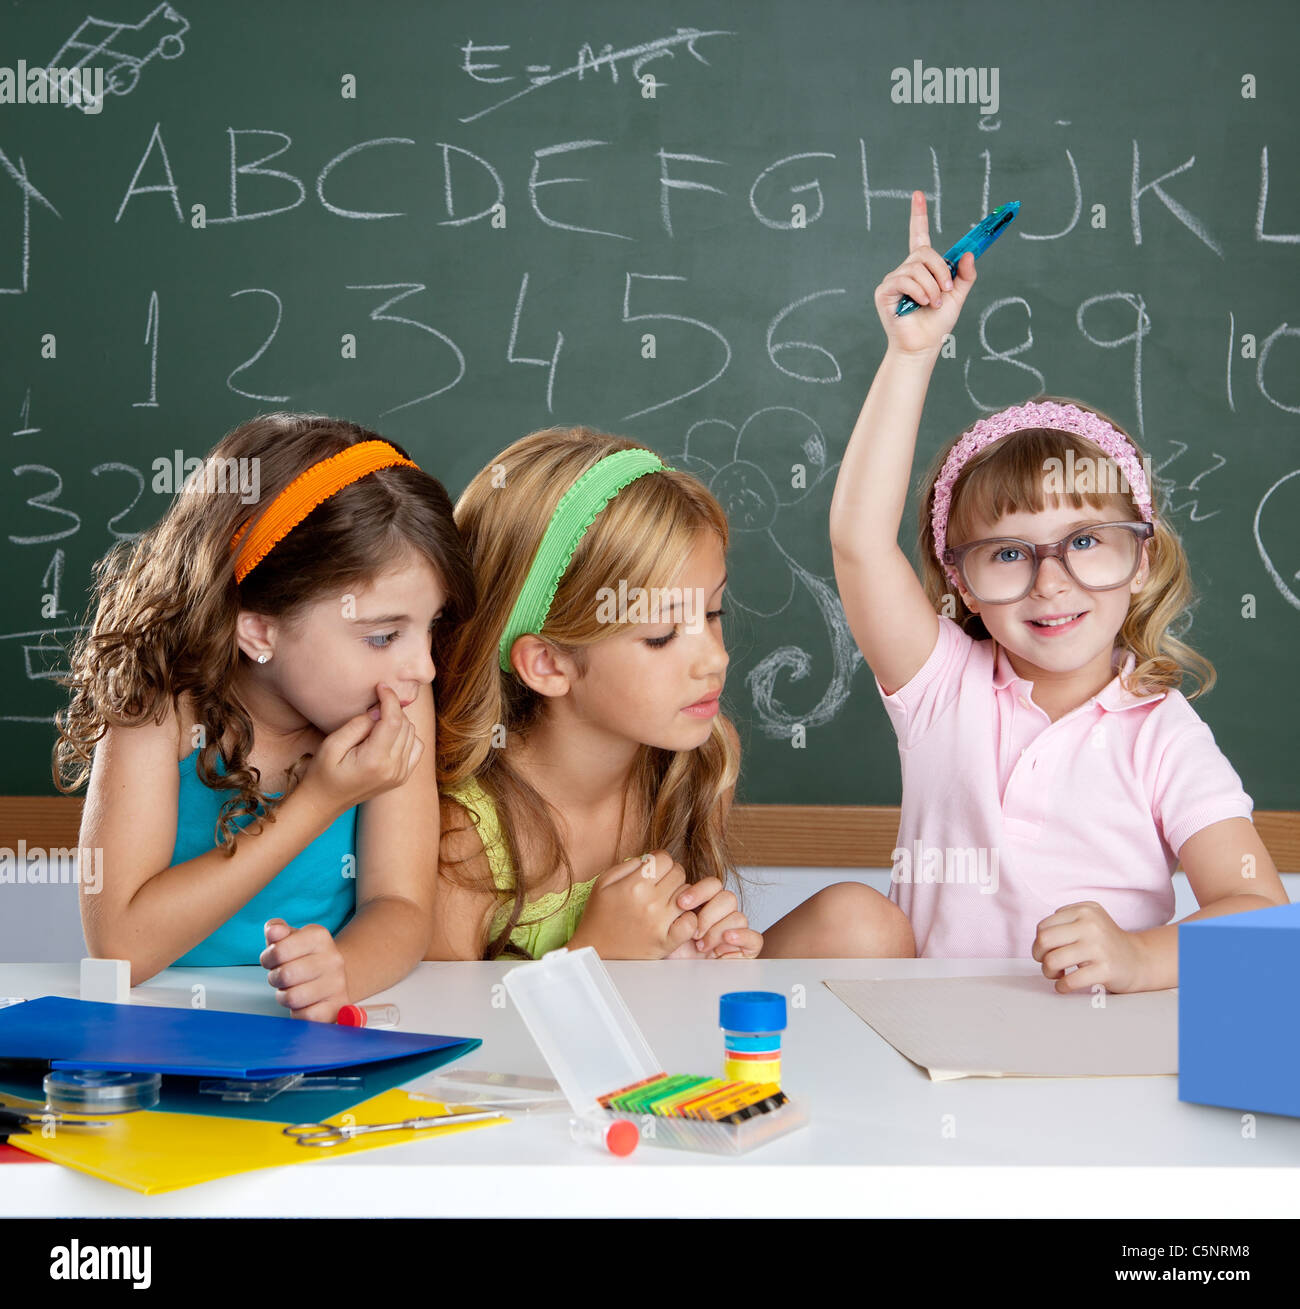 Clever School Girl: Boring Student With Clever Children Girl Raising Hand